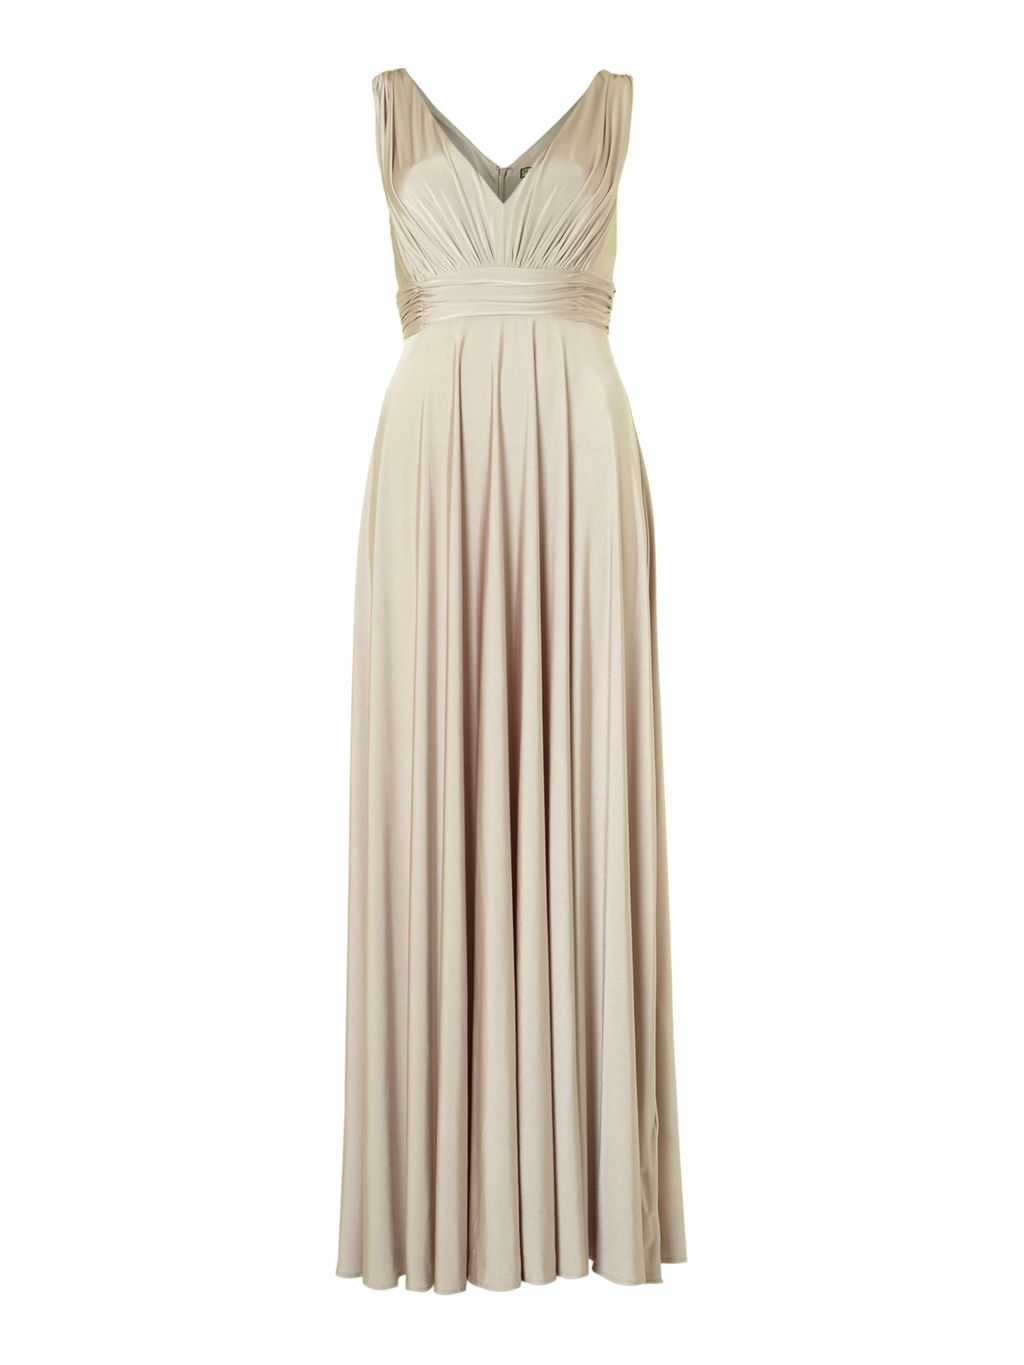 Deep V Full Skirted Maxi Dress, Champagne - neckline: low v-neck; pattern: plain; sleeve style: sleeveless; style: maxi dress; bust detail: ruching/gathering/draping/layers/pintuck pleats at bust; predominant colour: champagne; occasions: evening, occasion; length: floor length; fit: fitted at waist & bust; fibres: polyester/polyamide - stretch; hip detail: soft pleats at hip/draping at hip/flared at hip; sleeve length: sleeveless; pattern type: fabric; texture group: jersey - stretchy/drapey; season: a/w 2013